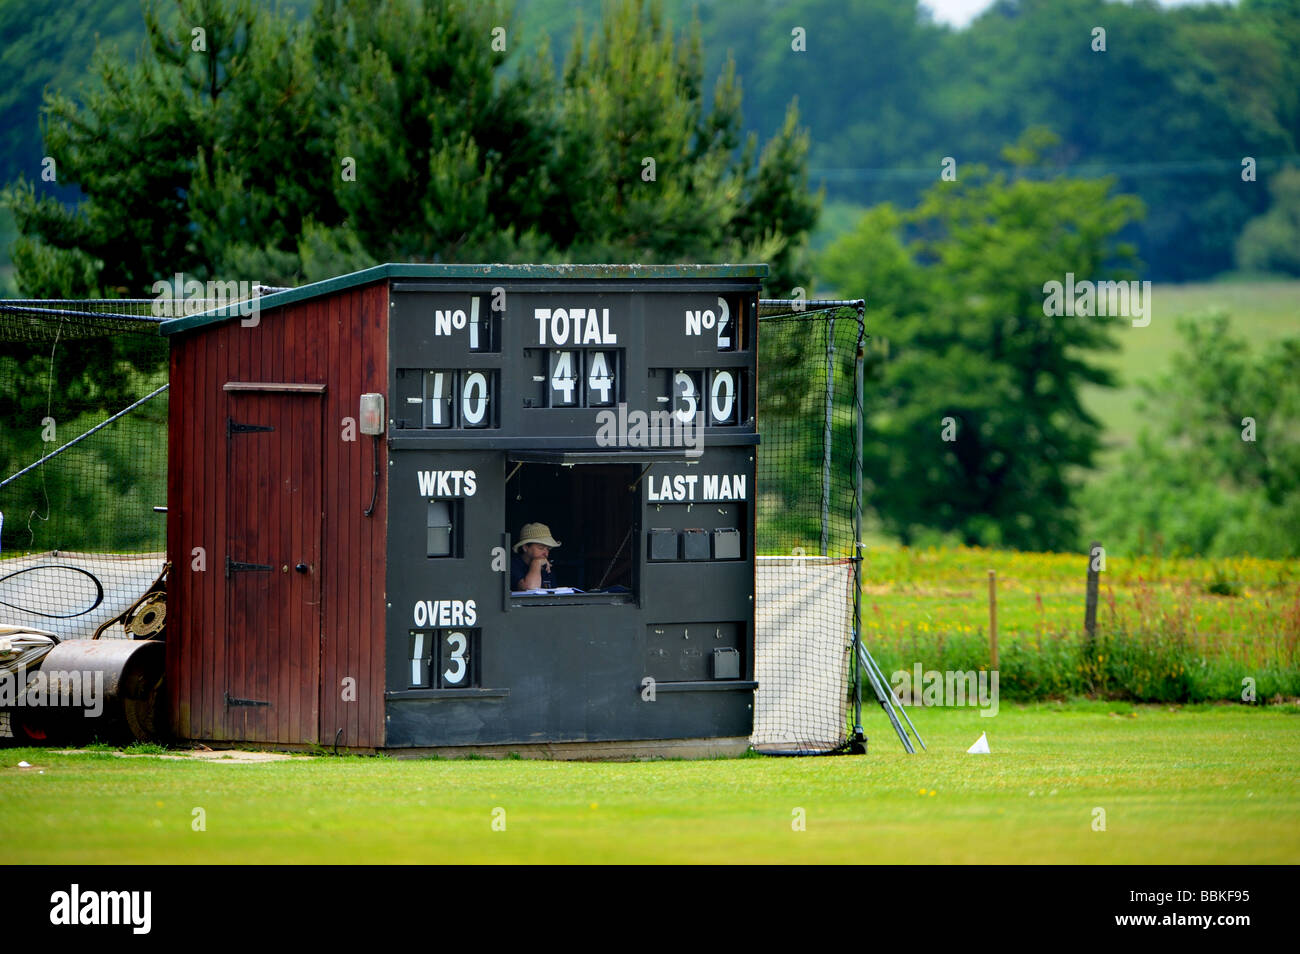 A woman notes the scores down at a local cricket match in cuckfield - Stock Image